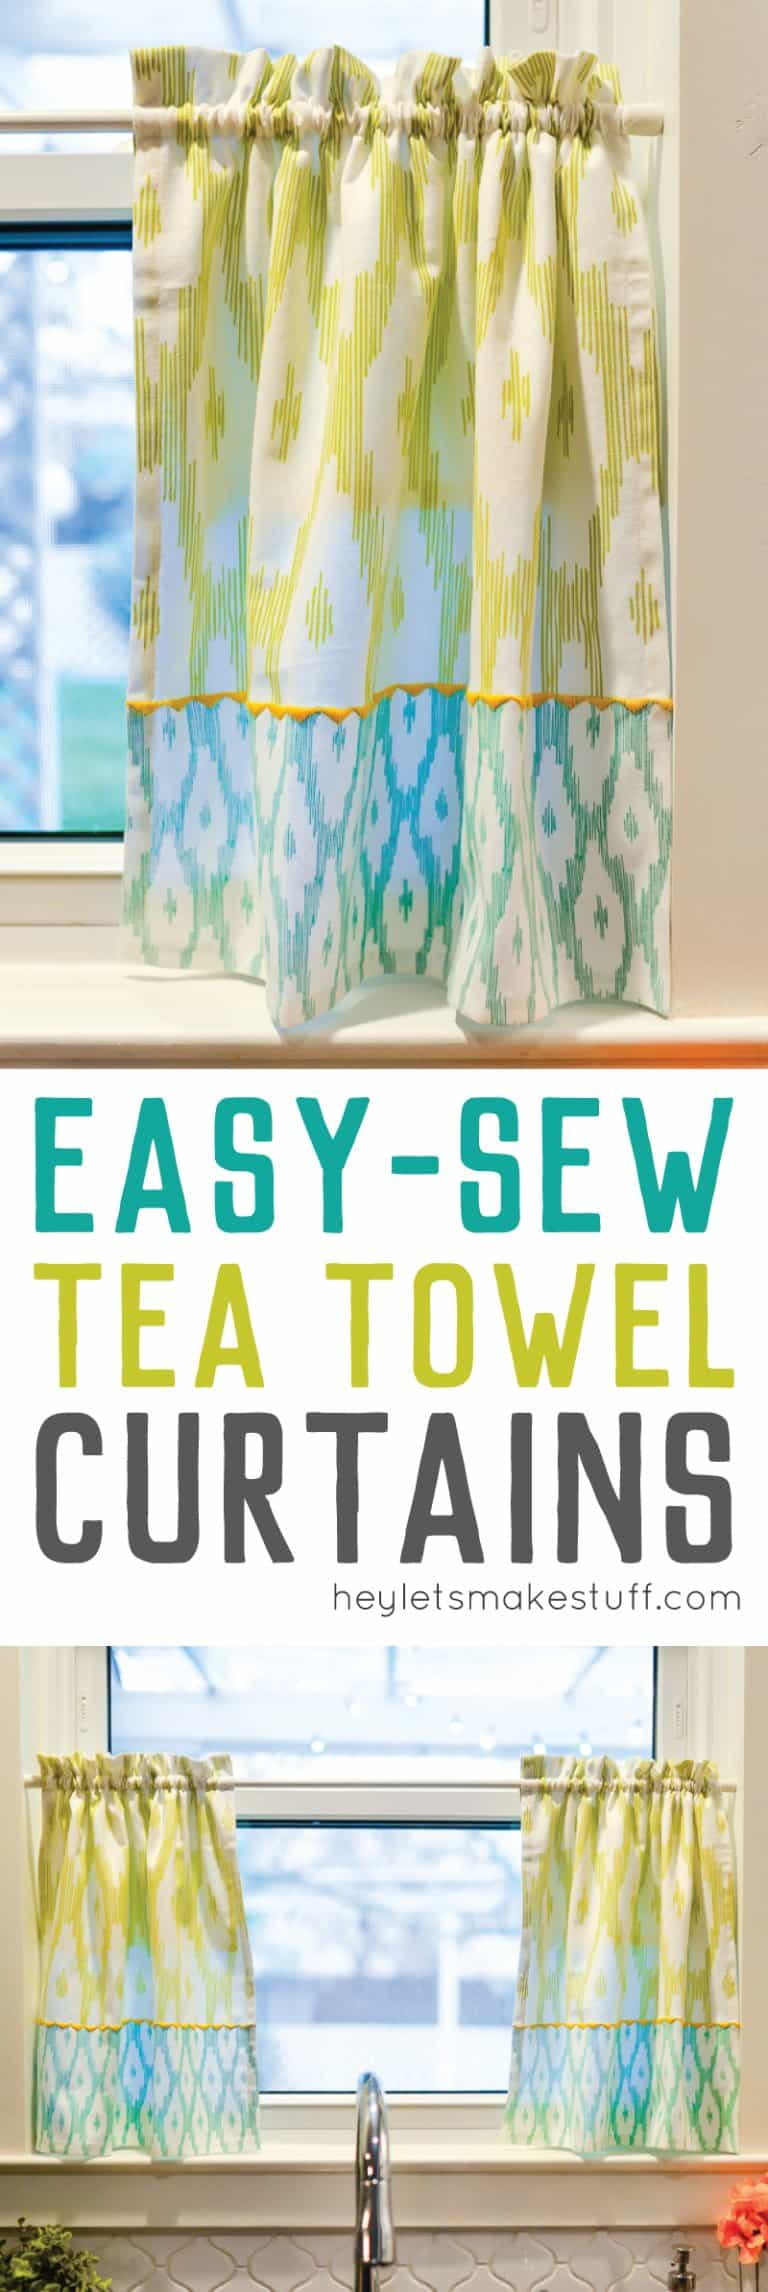 Easy to sew tea towel curtains